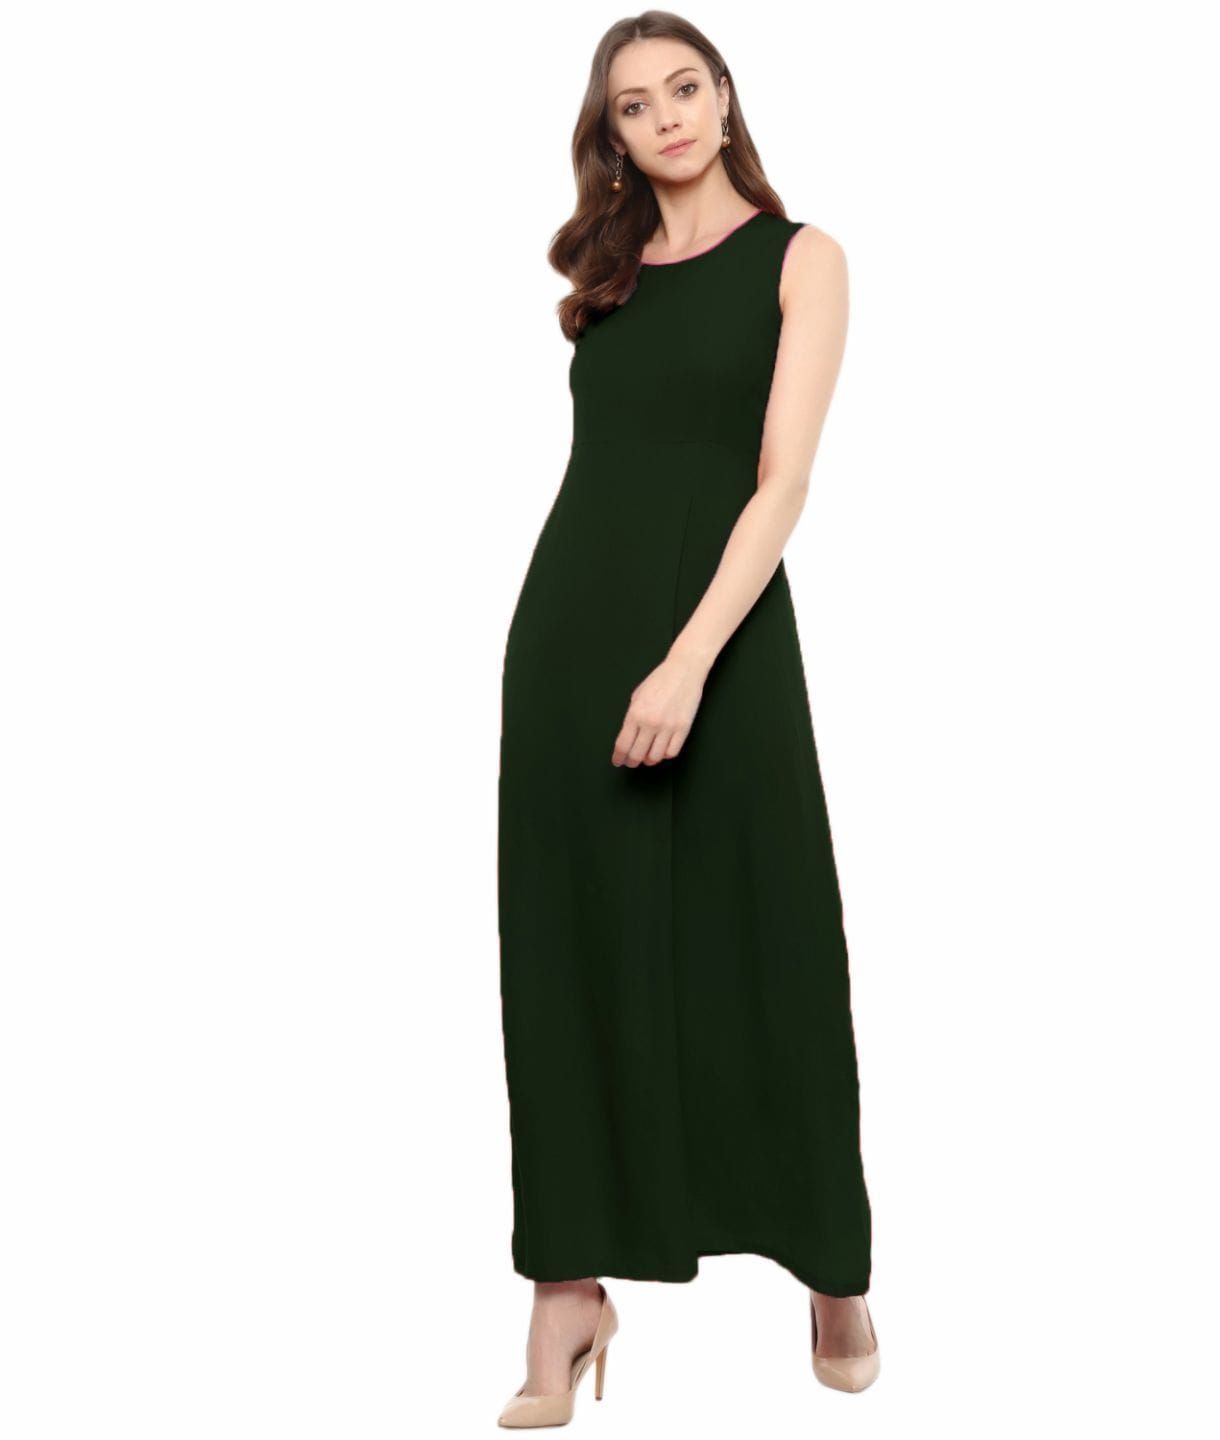 Uptownie Plus Army Green Solid Sleeveless Crepe Maxi Dress/Gown